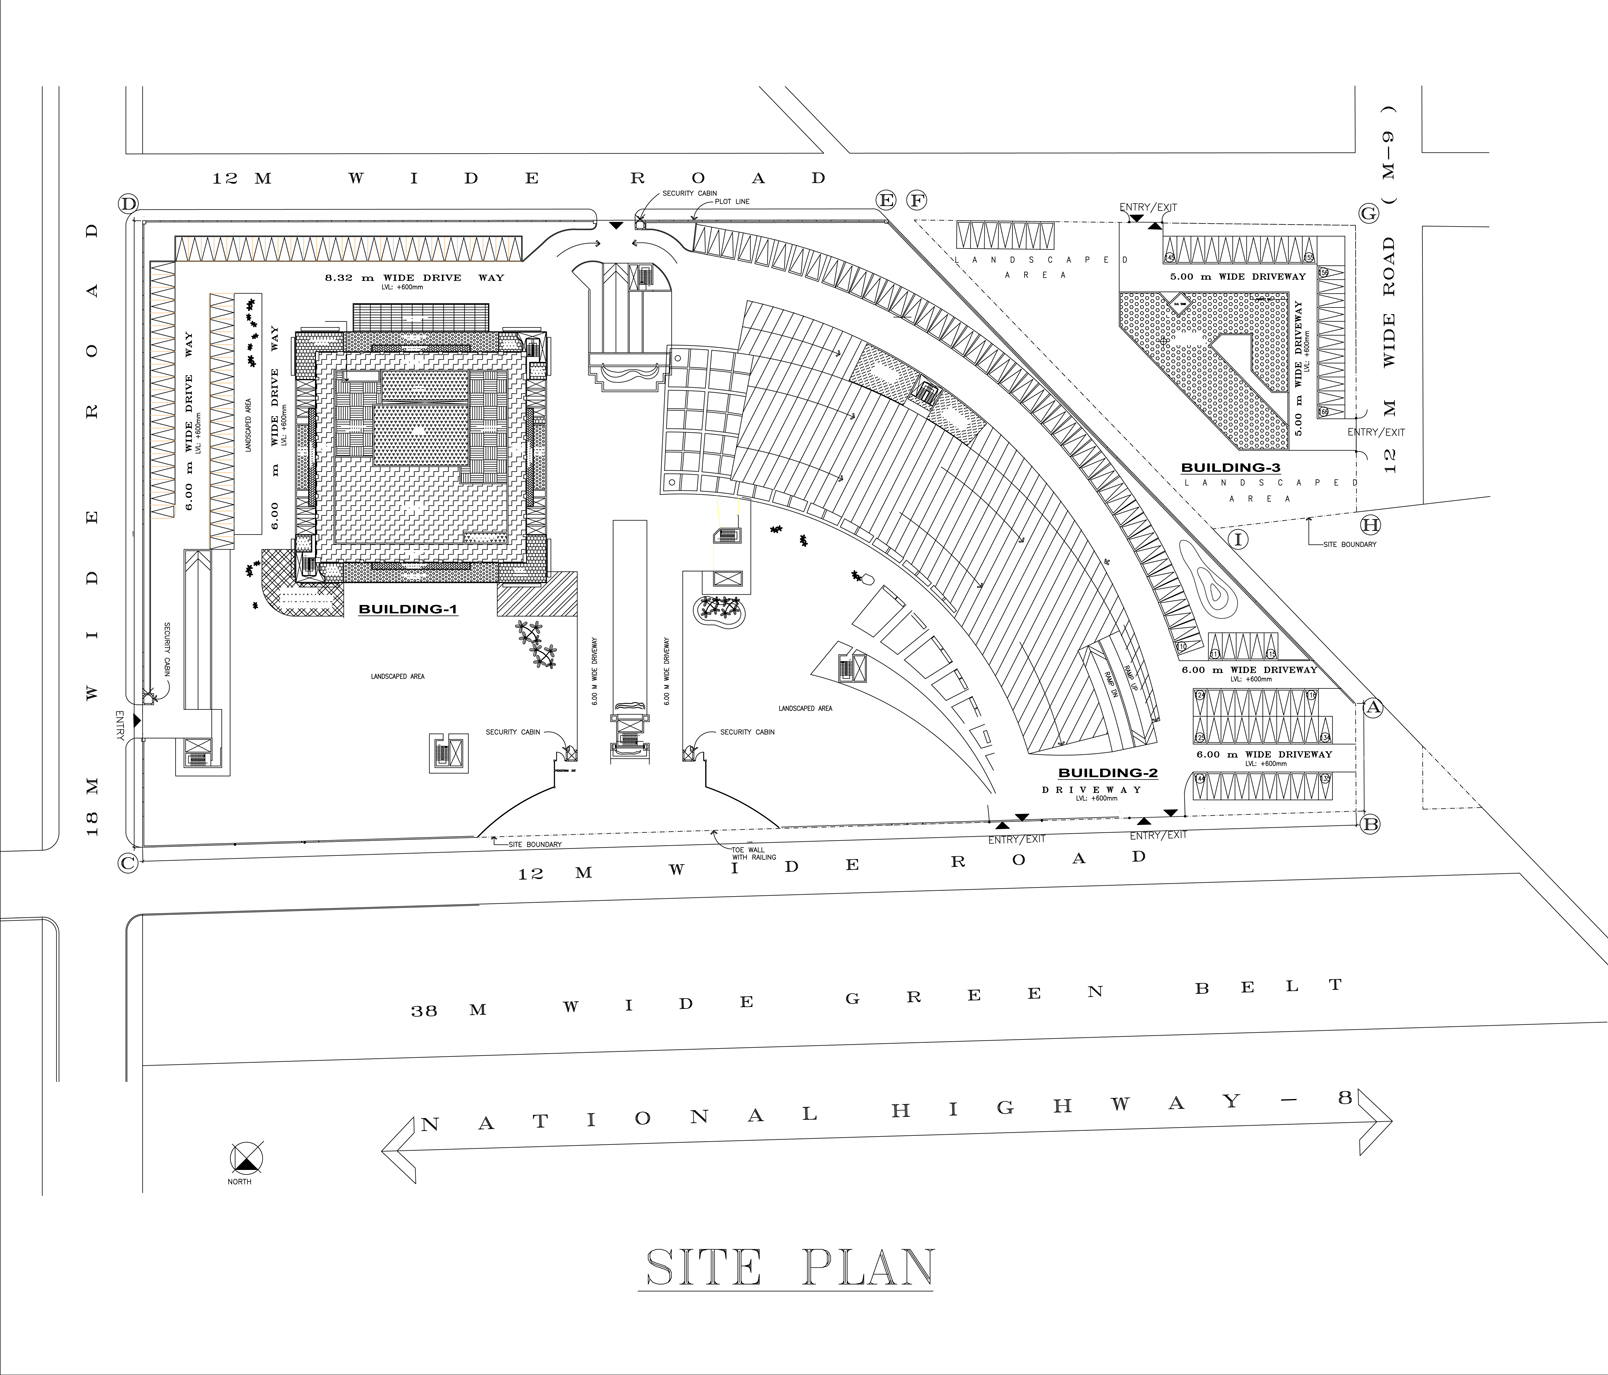 Site-Layout-1-Of-DLF-Nestle-Homes-Gurgaon-Offices-In-Gurugram